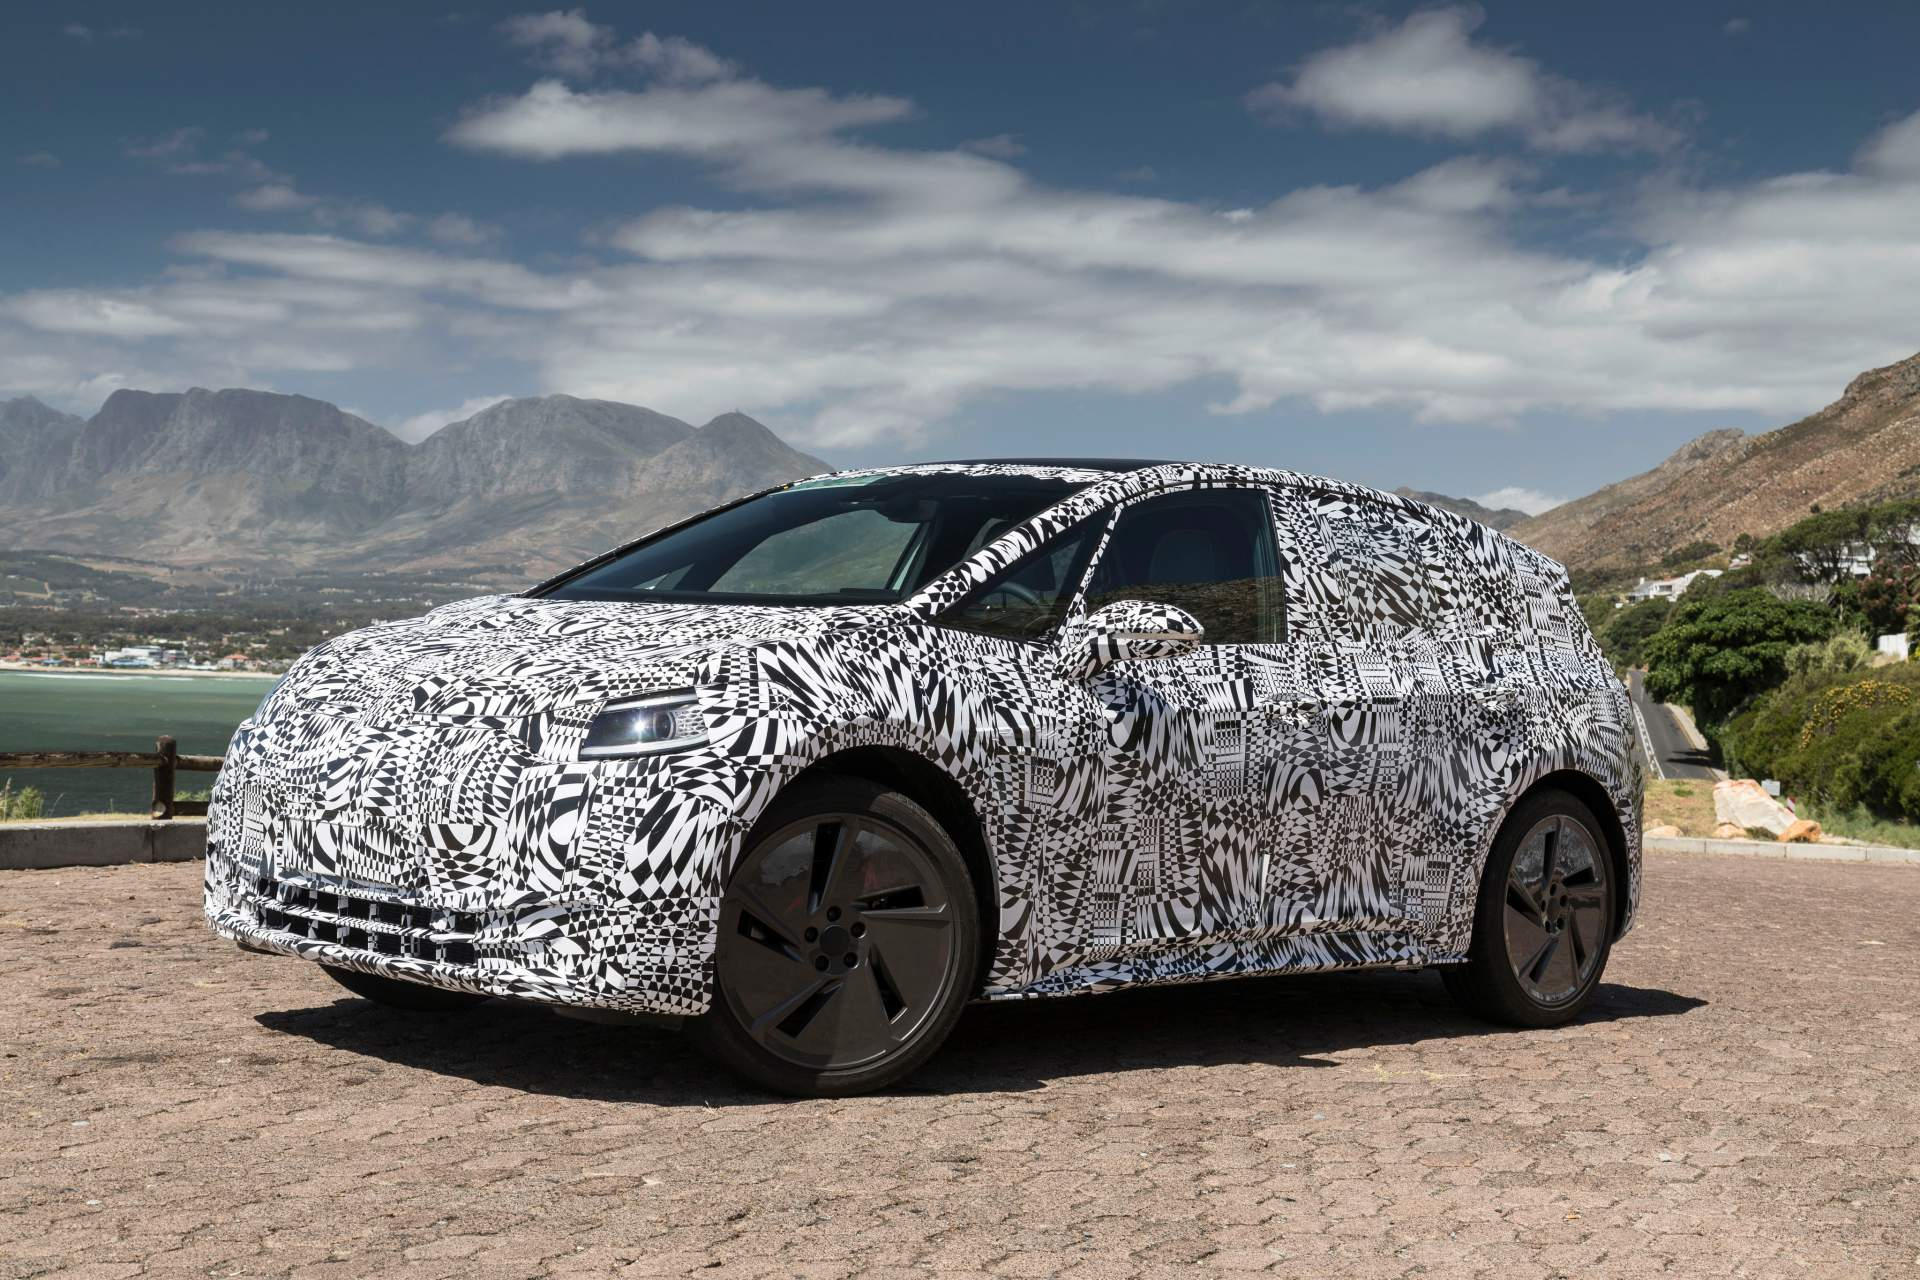 vw-id-hatch-test-prototype-4.jpg